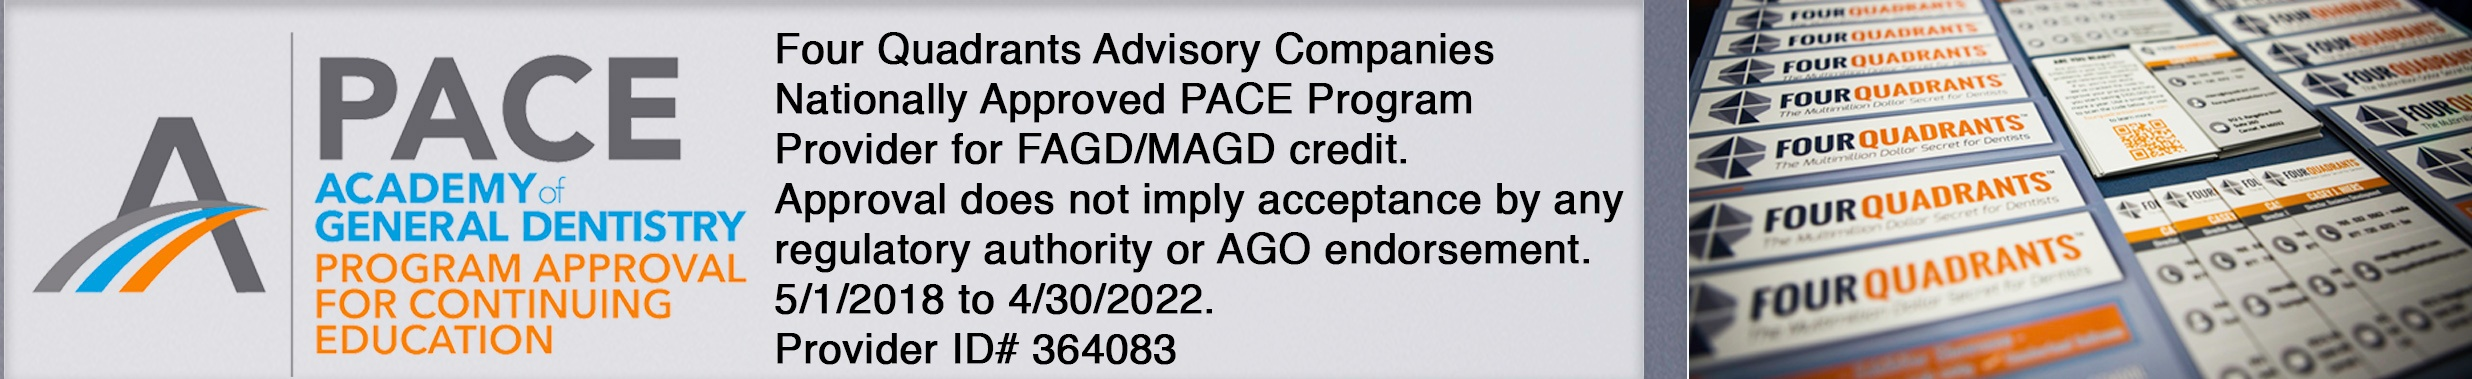 Four Quadrants Advisory Companies Nationally Approved PACE Program Provider for FAGD/MAGD credit.